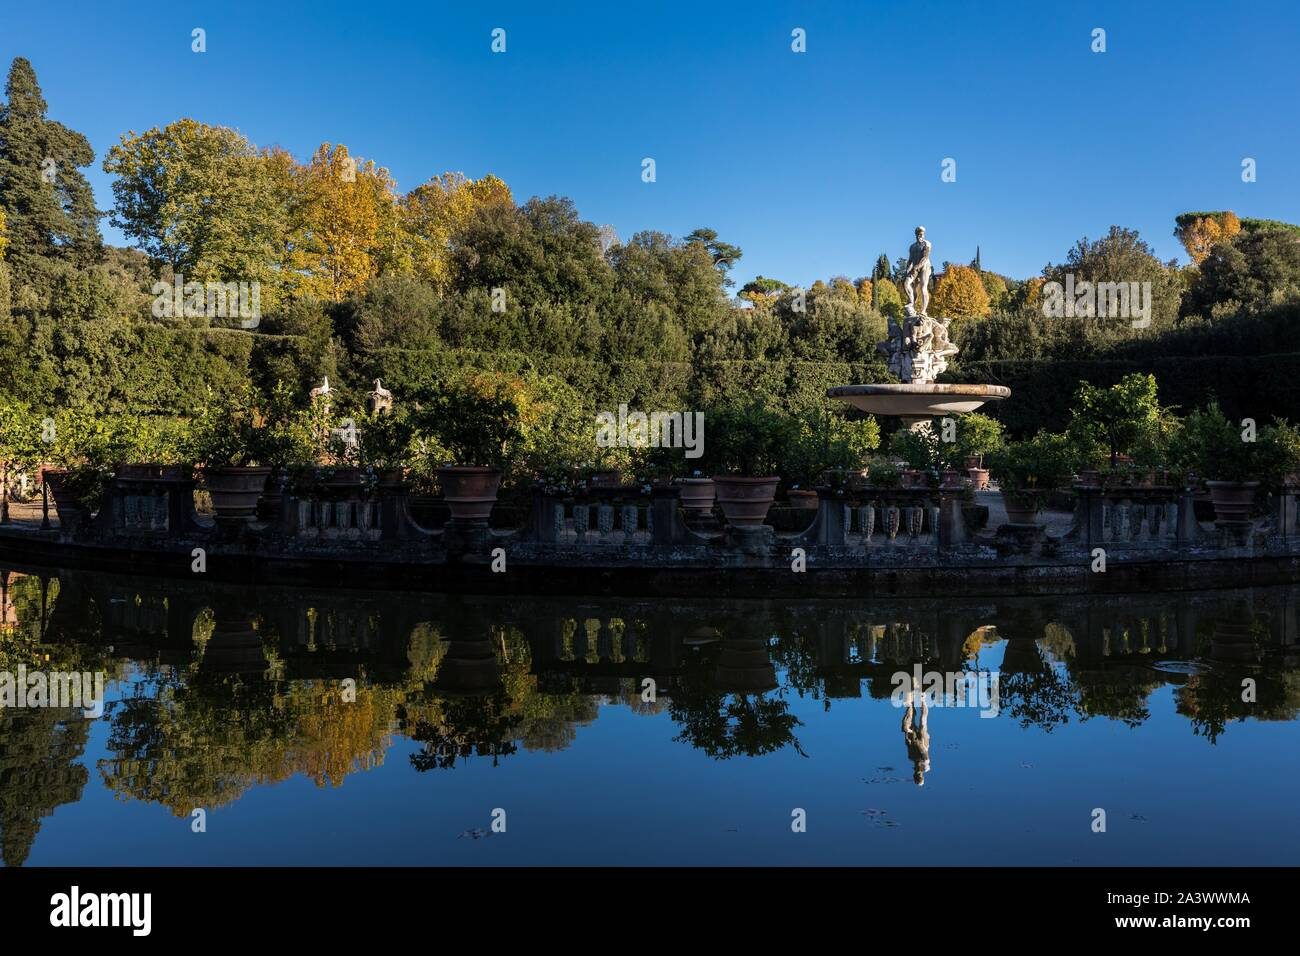 REFLECTIONS OF STATUES AND BUSHES IN THE FOUNTAIN OF THE OCEAN, BOBOLI GARDEN, FLORENCE, TUSCANY, ITALY Stock Photo